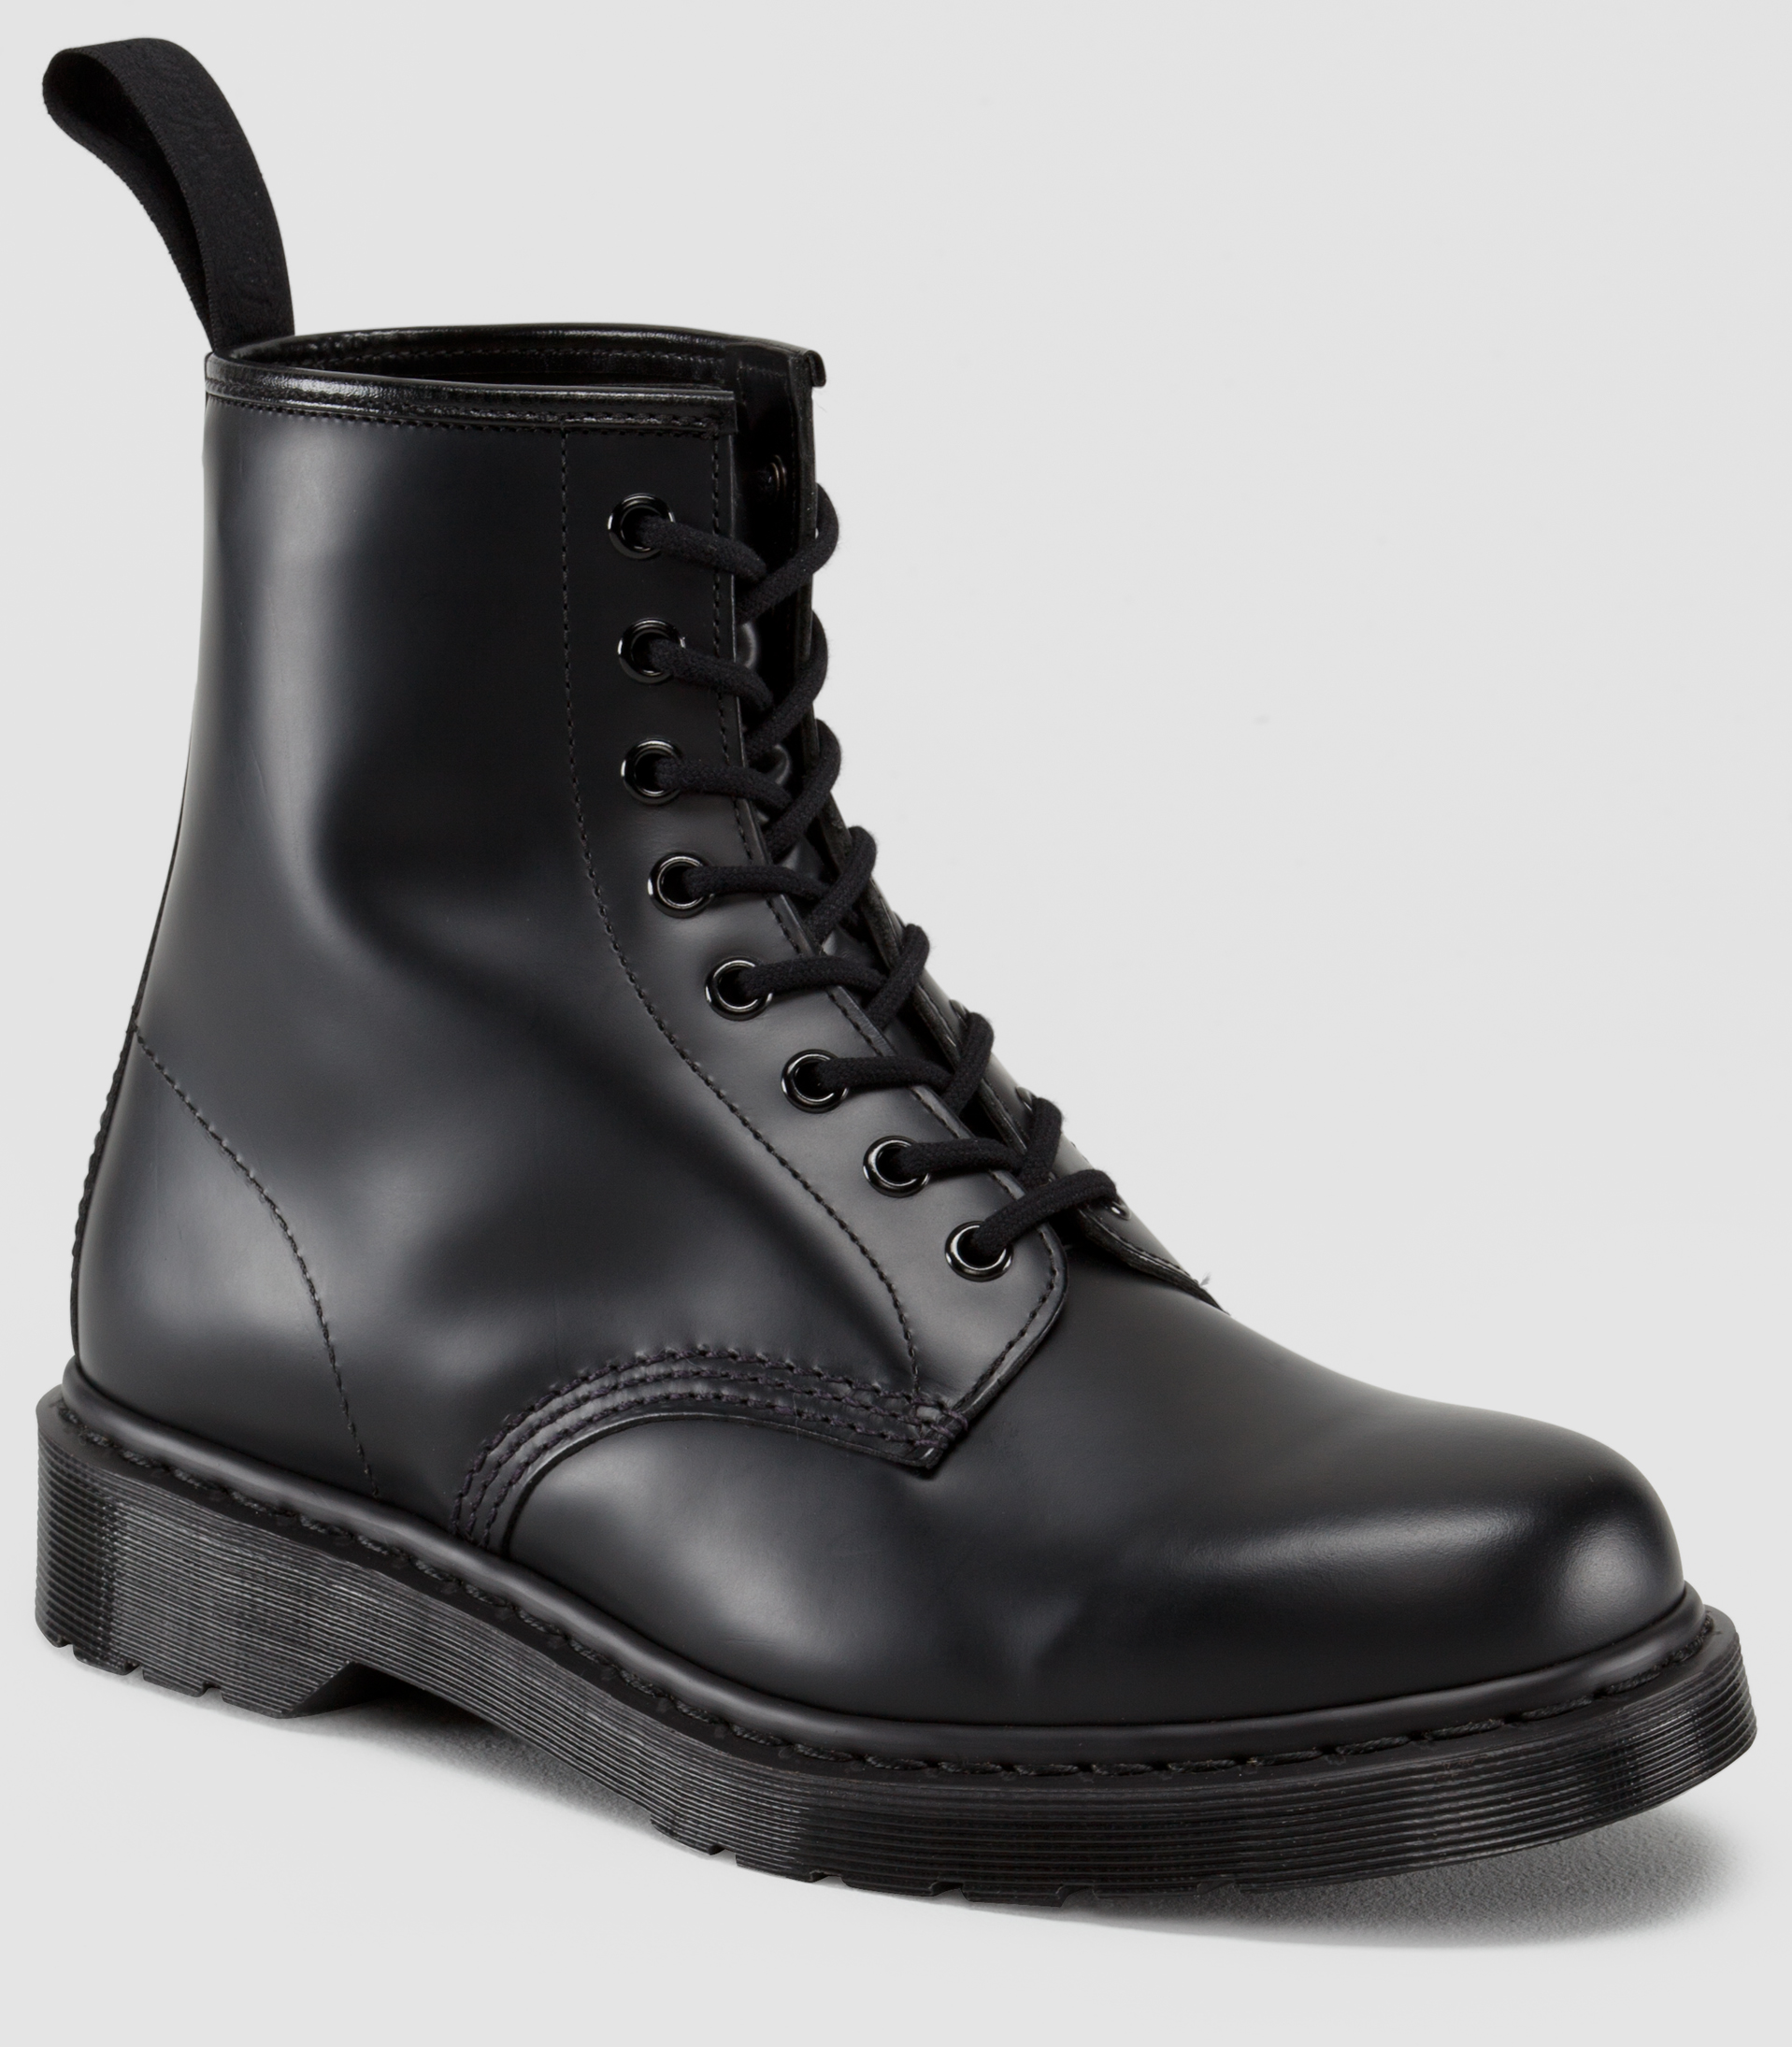 1460 mono 1460 8 eye boots official dr martens store us. Black Bedroom Furniture Sets. Home Design Ideas